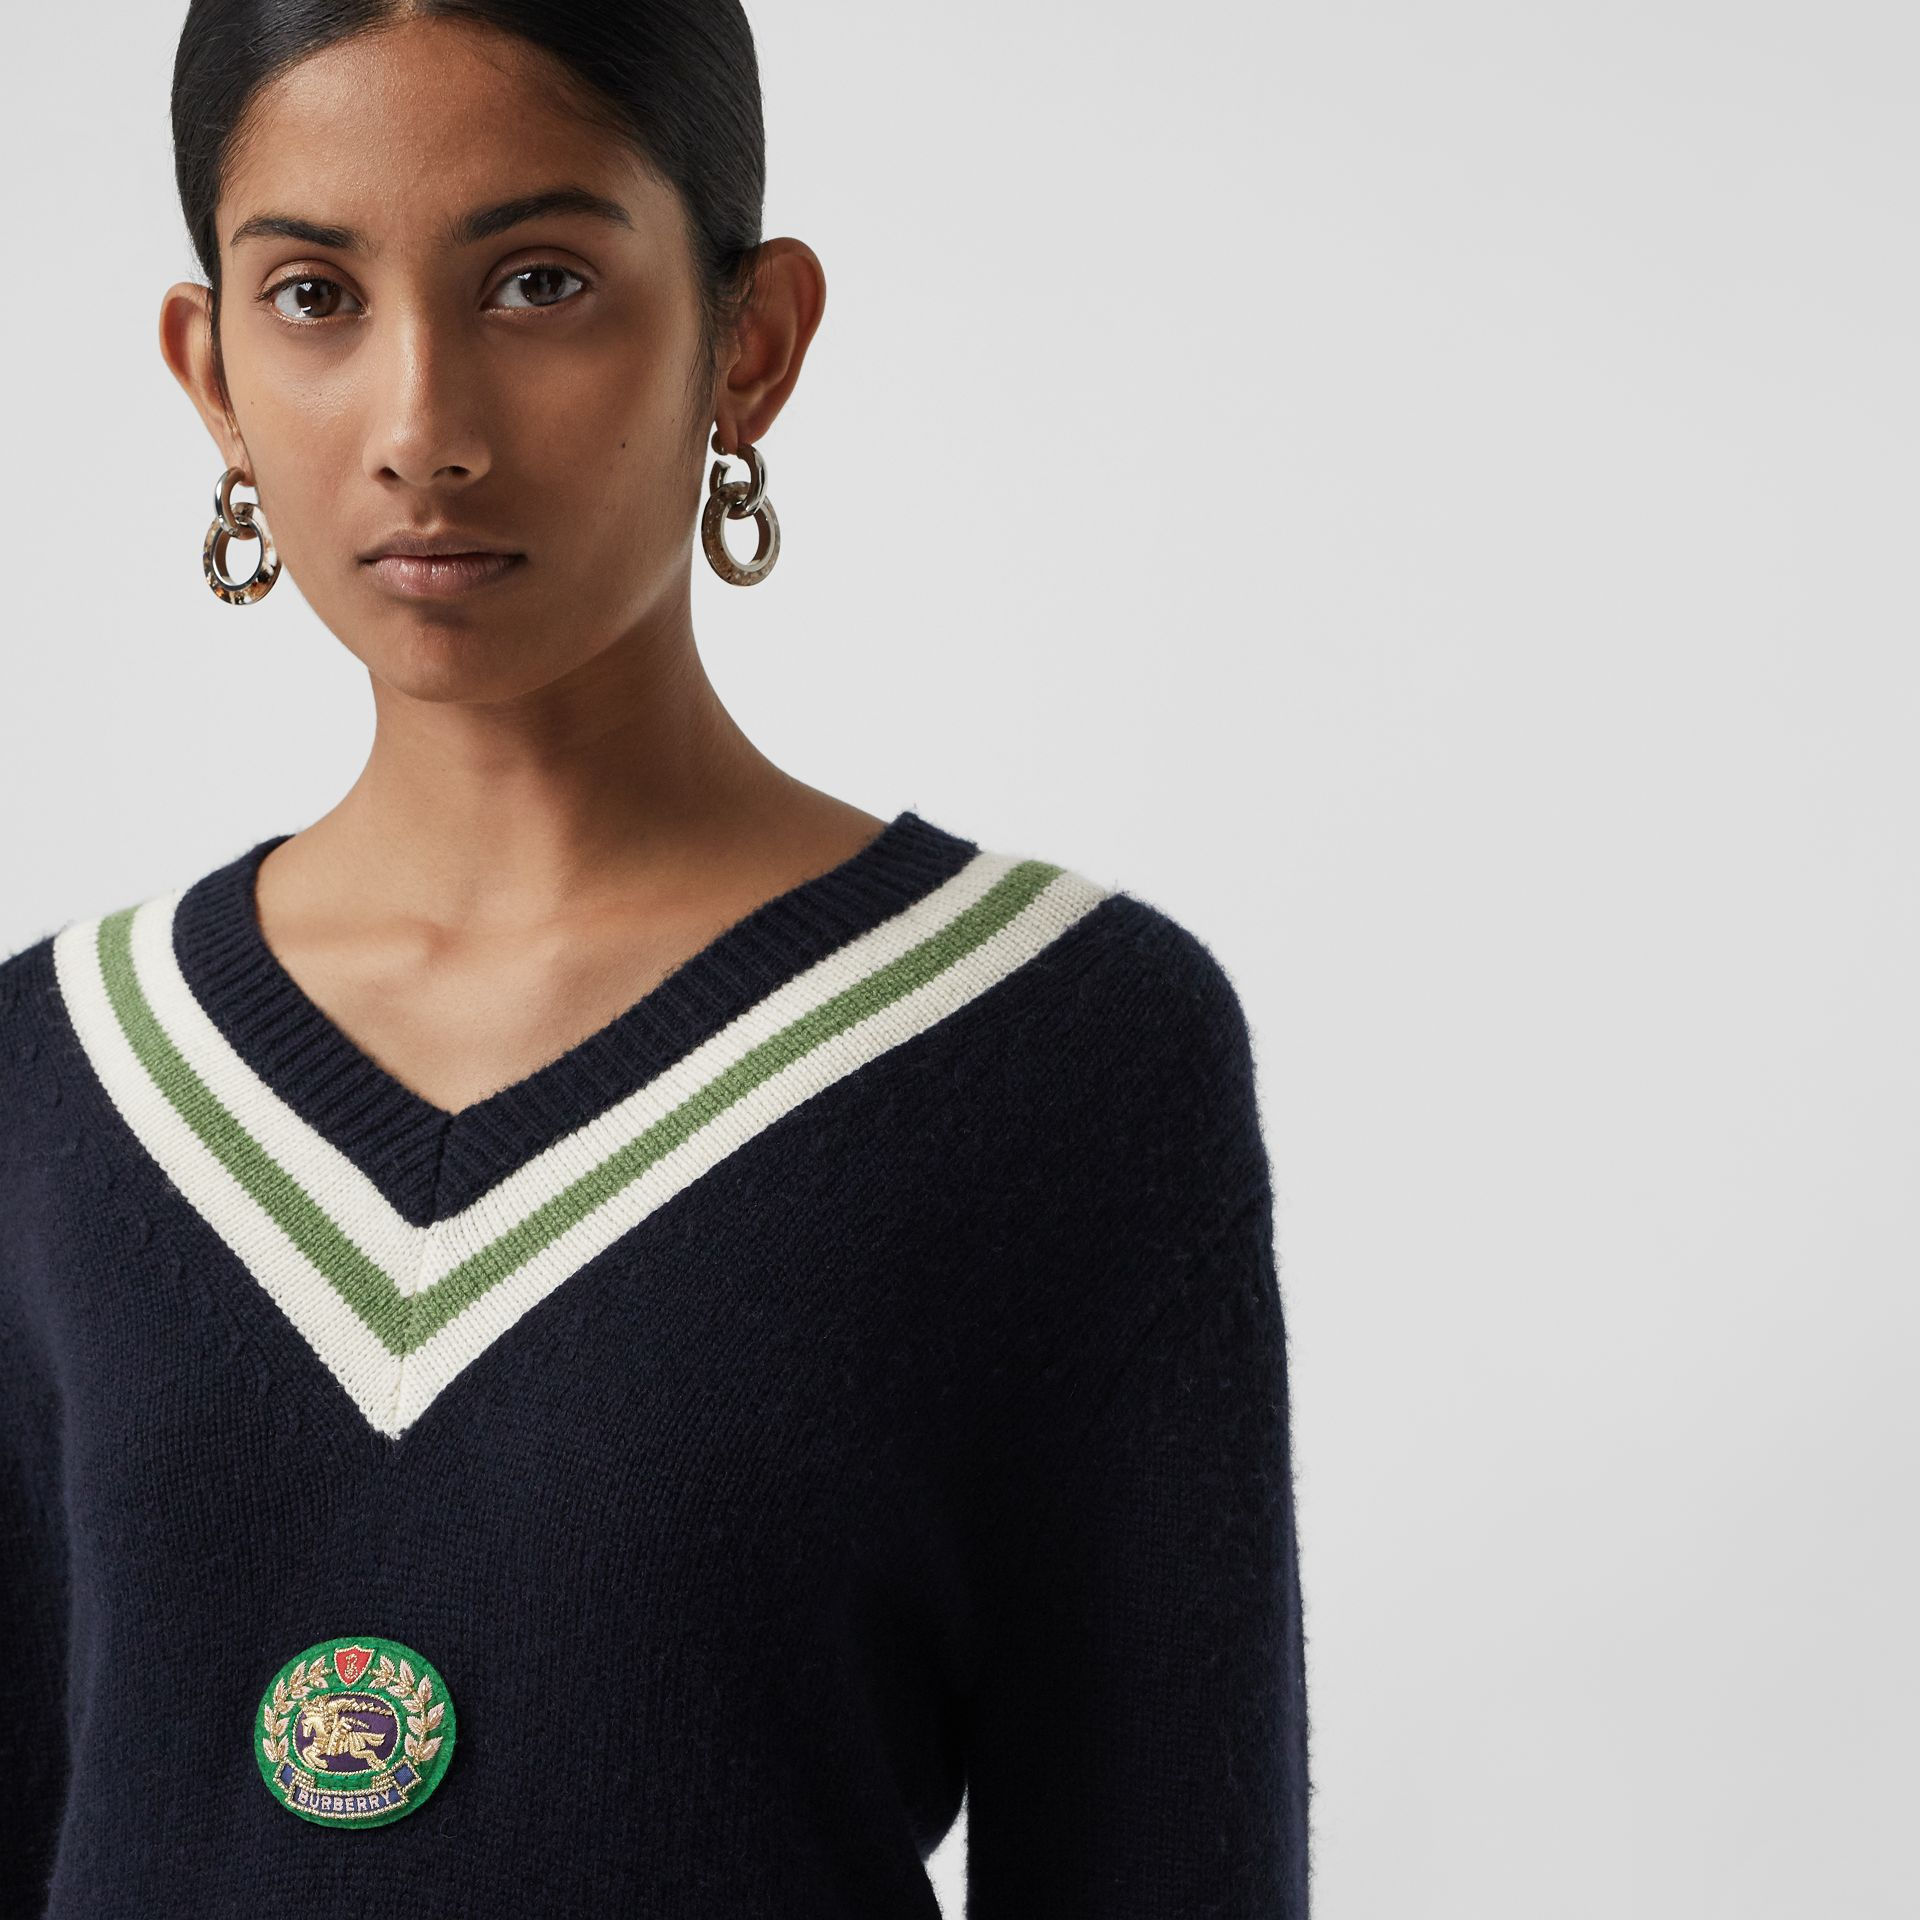 Embroidered Crest Wool Cashmere Sweater in Navy - Women | Burberry Canada - gallery image 1